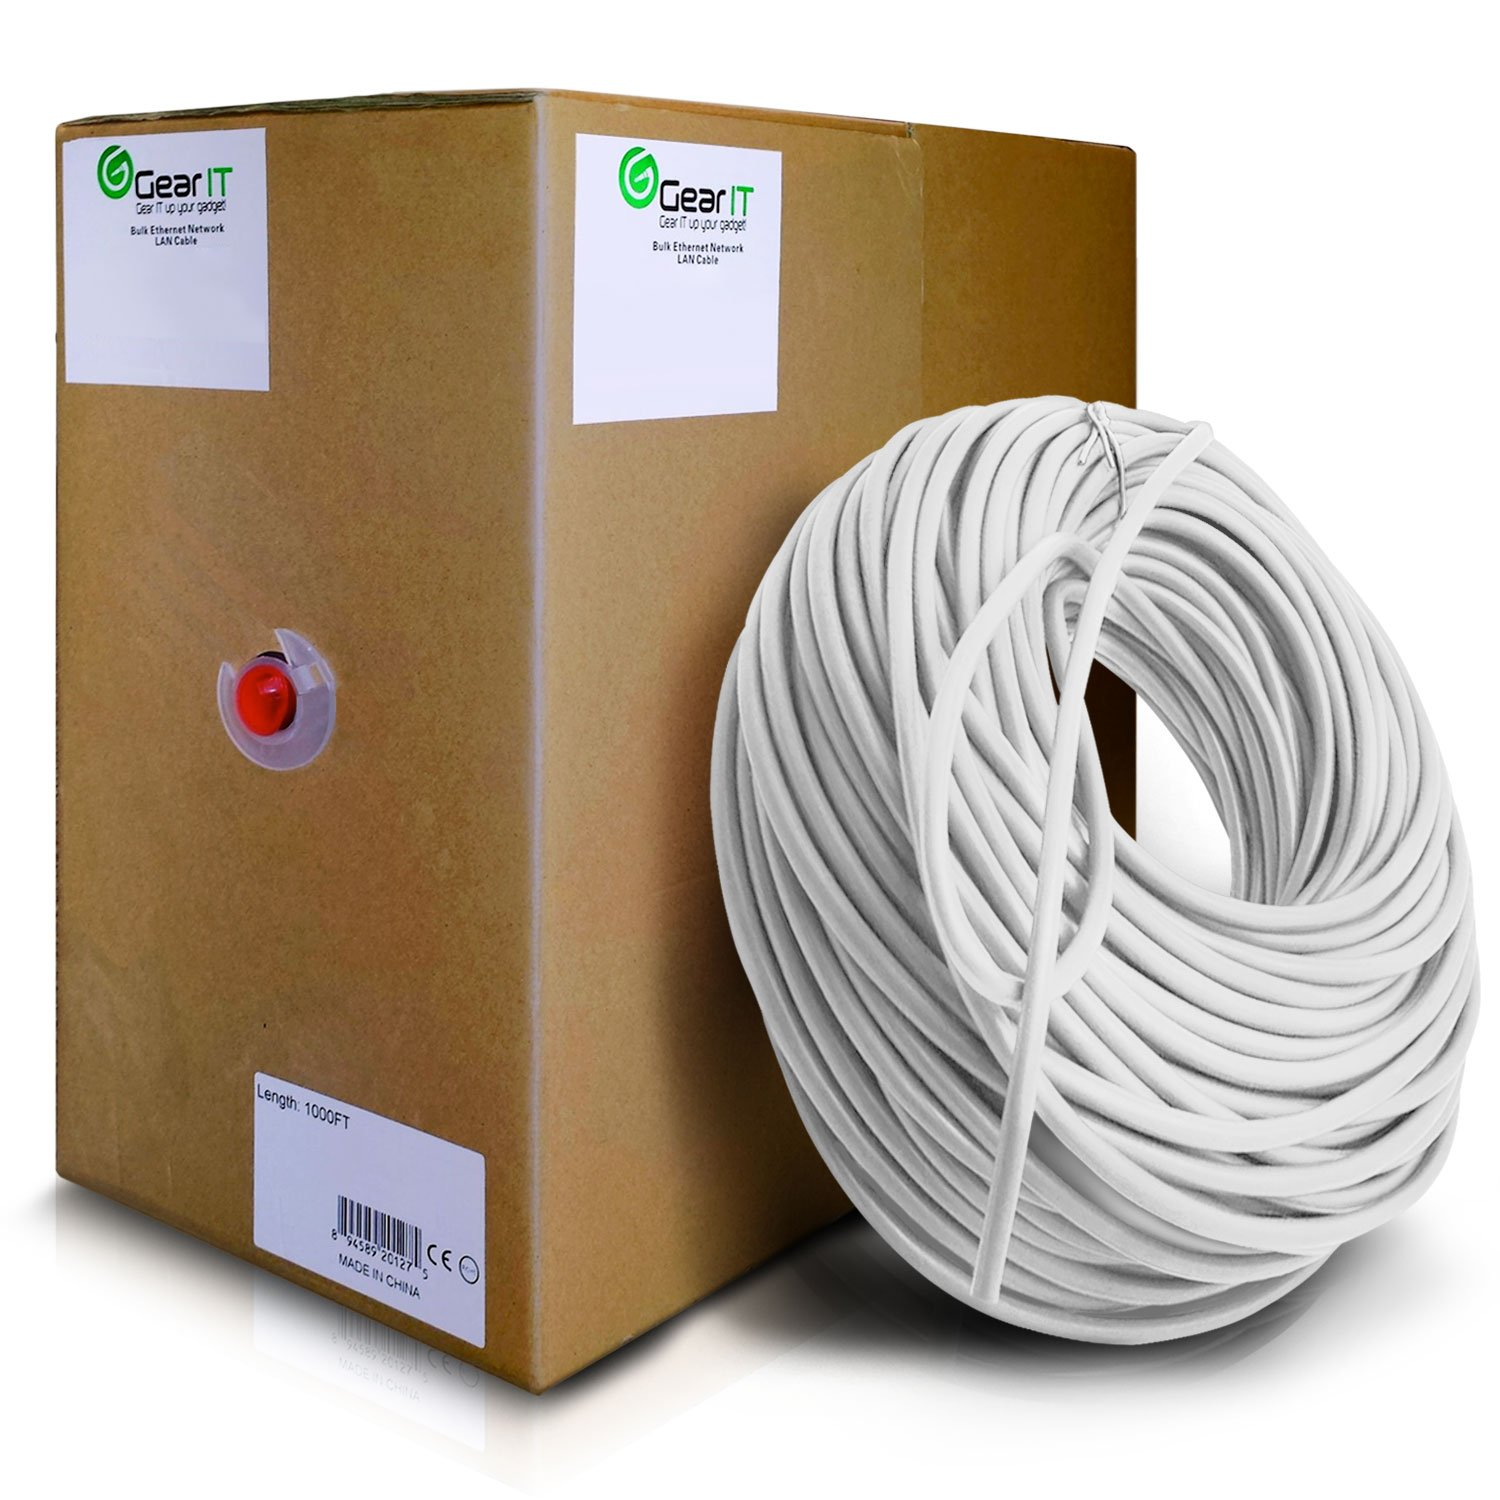 GearIT Cat5e Ethernet Cable Bulk 1000 Feet - Cat 5e 350Mhz 24AWG Full Copper Wire UTP Pull Box - In-Wall Rated (CM) Stranded Cat5e, White by GearIT